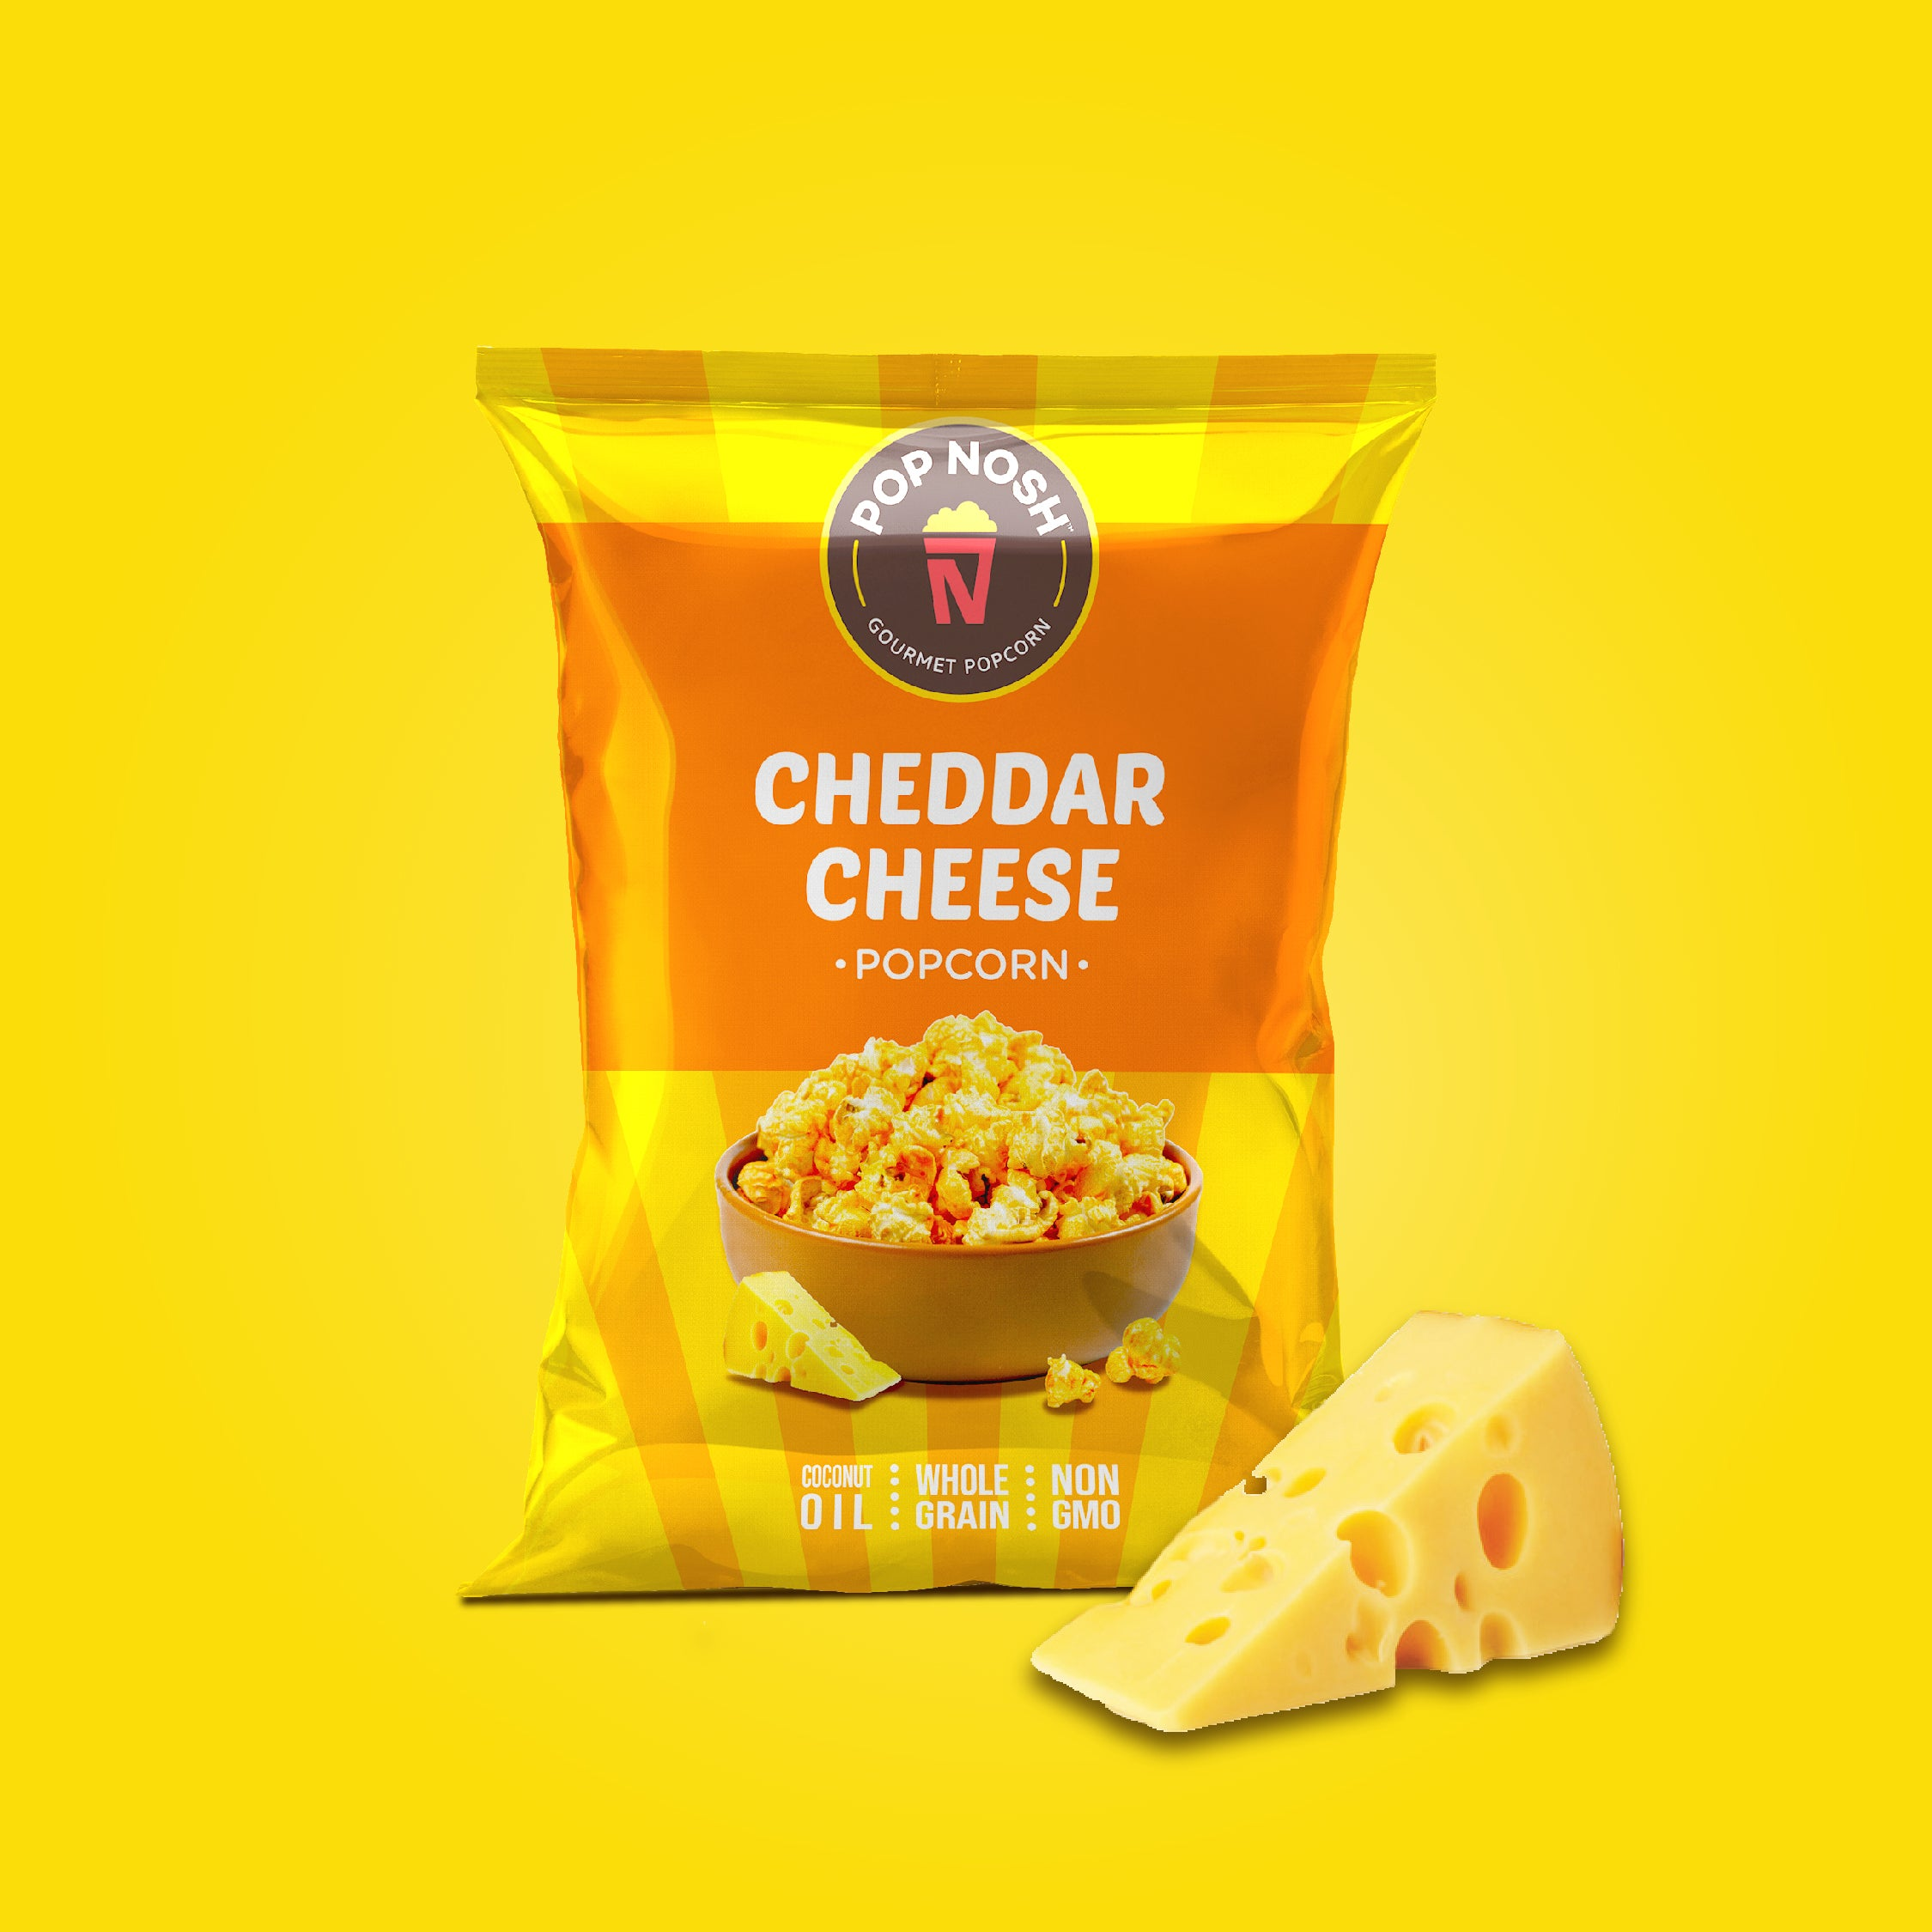 Cheddar Cheese Packs